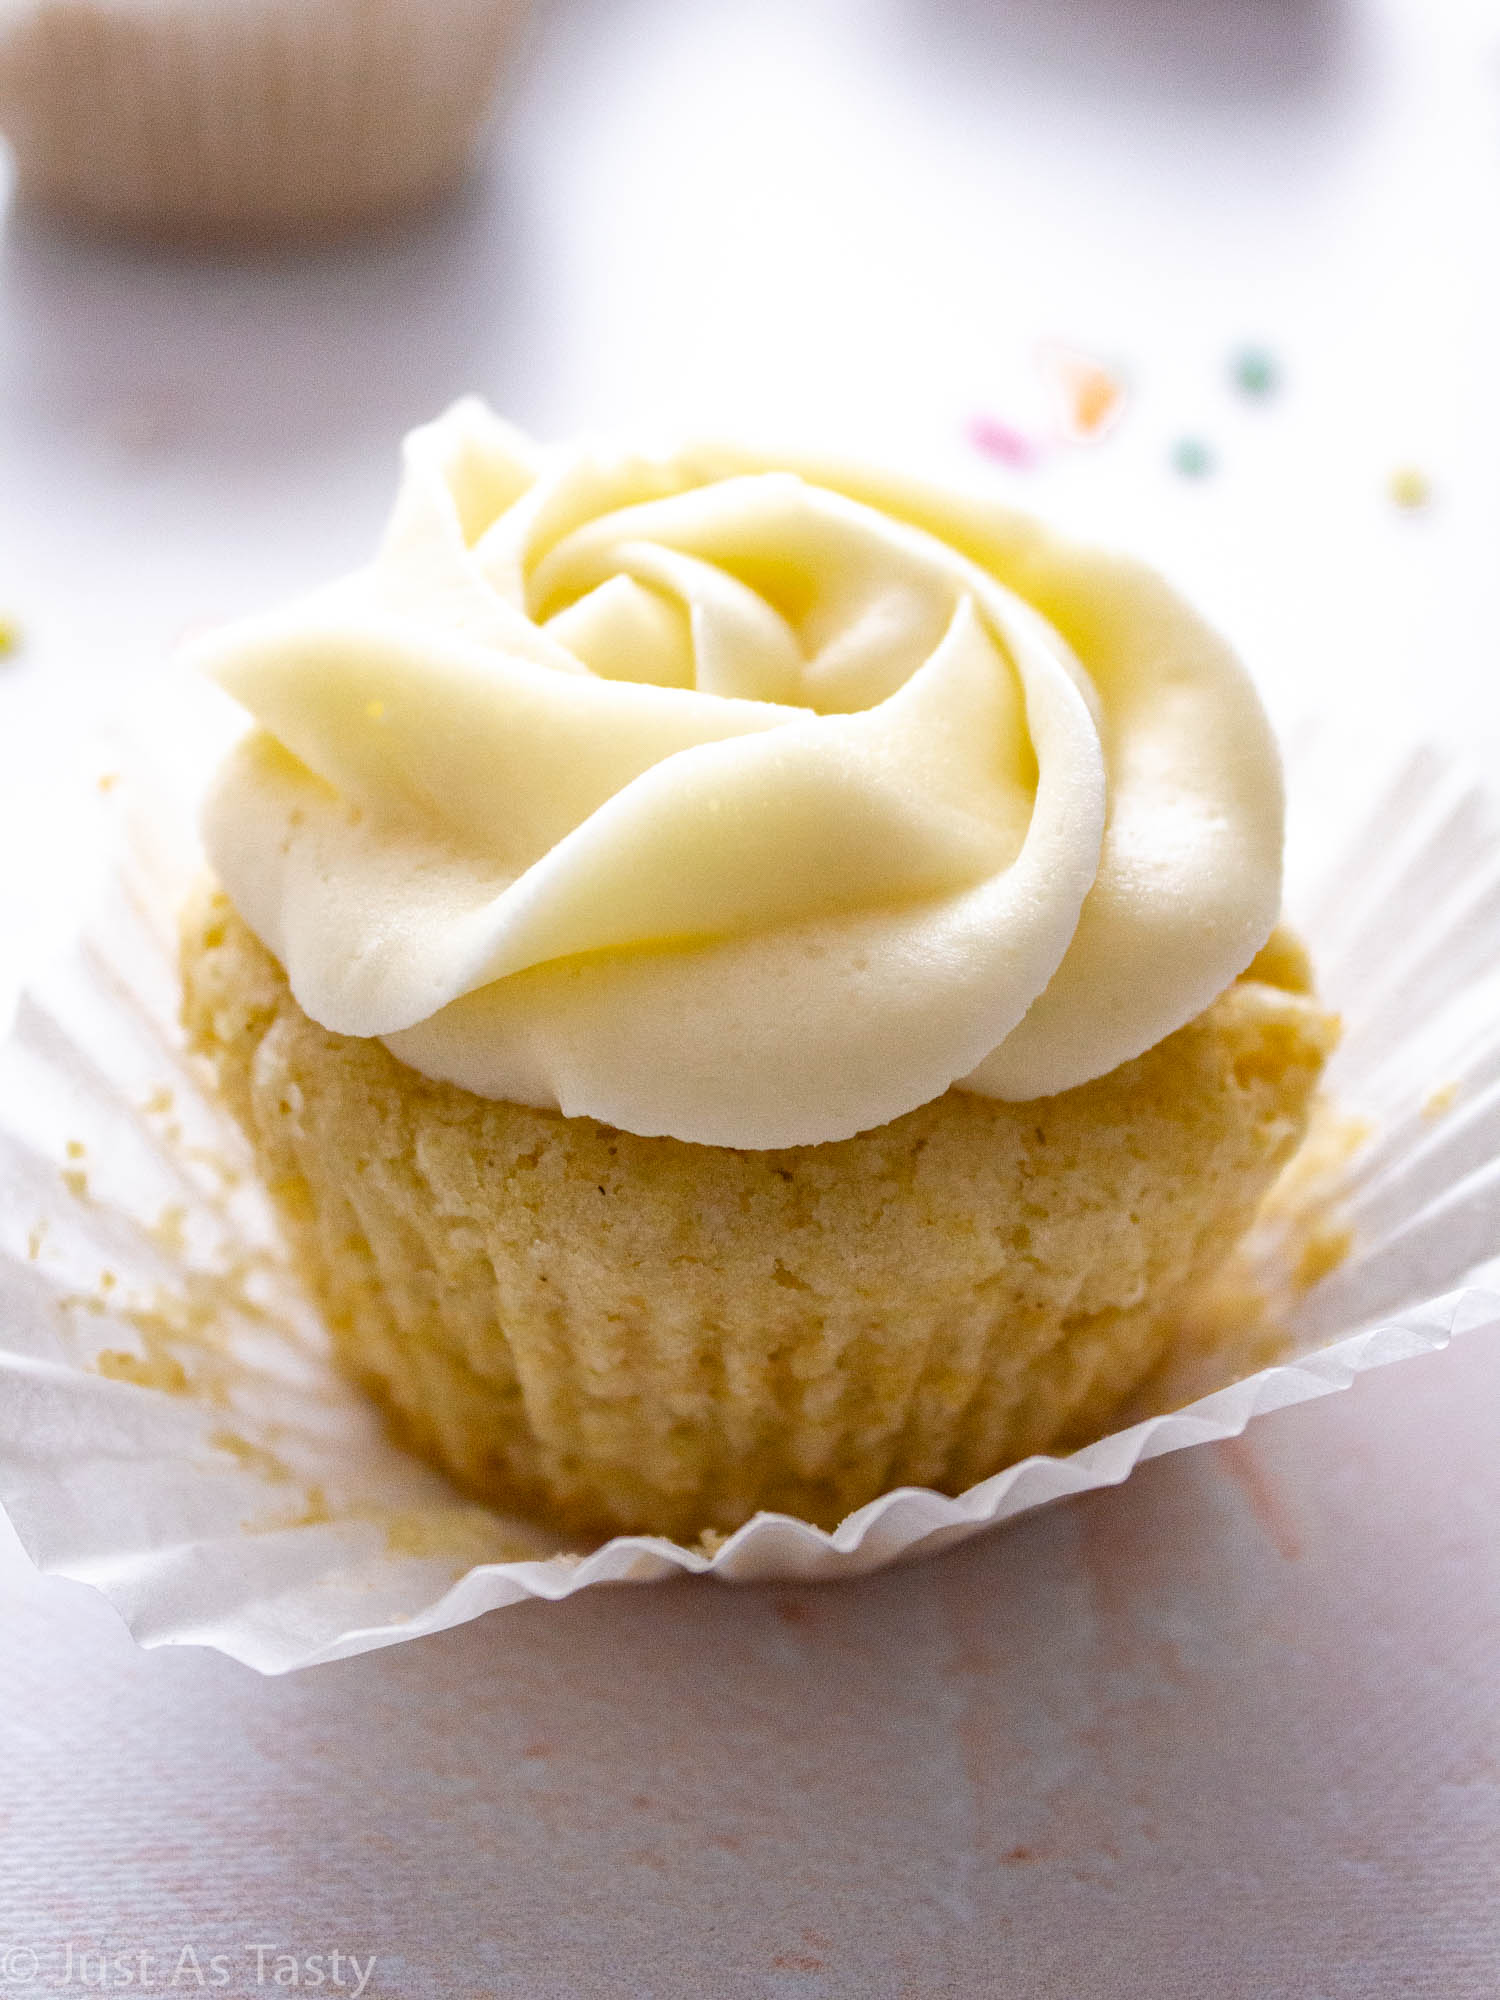 Close-up of a vanilla cupcake with white swirl frosting.